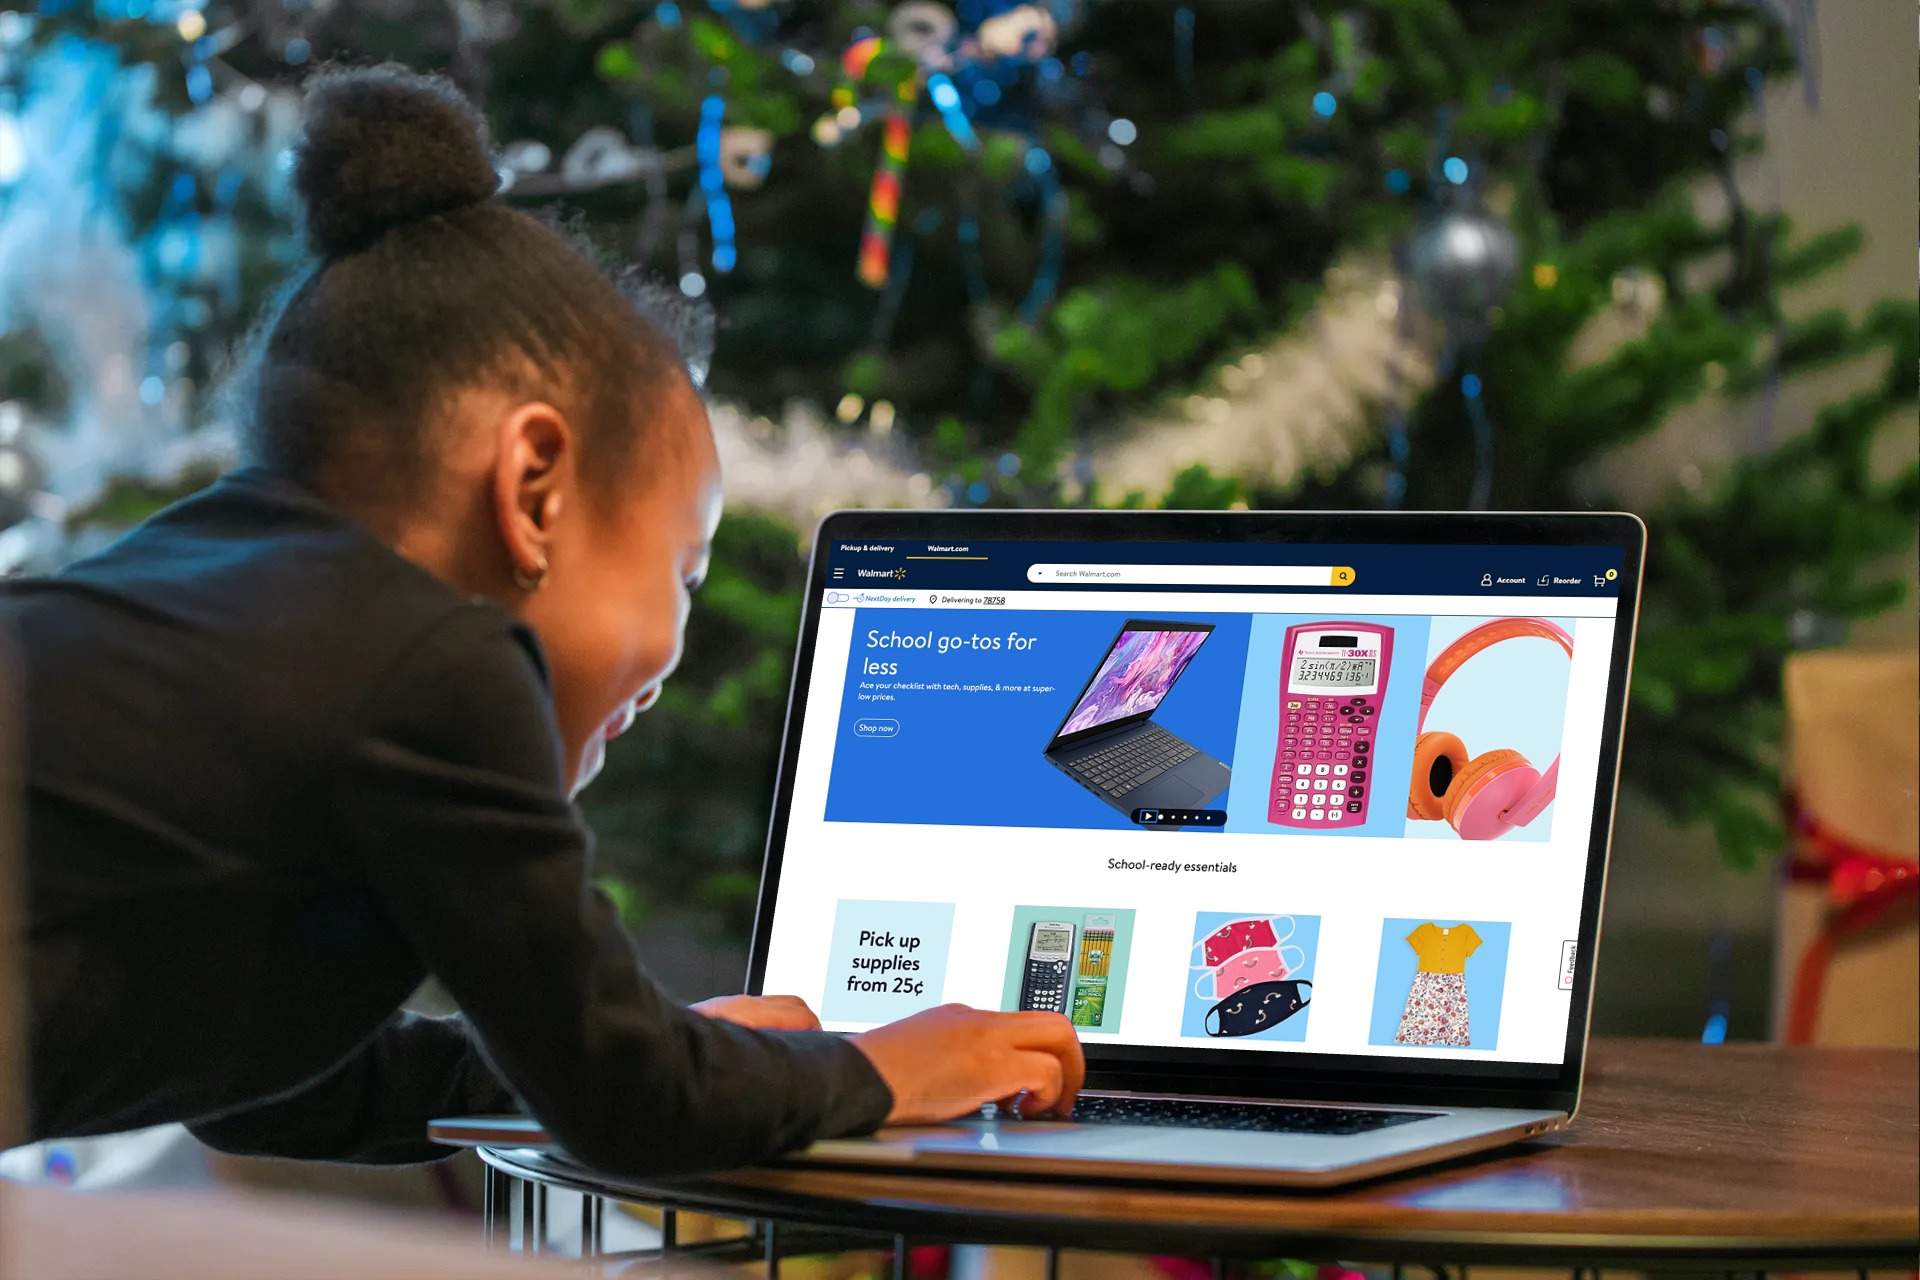 girl looking at walmart home screen on laptop